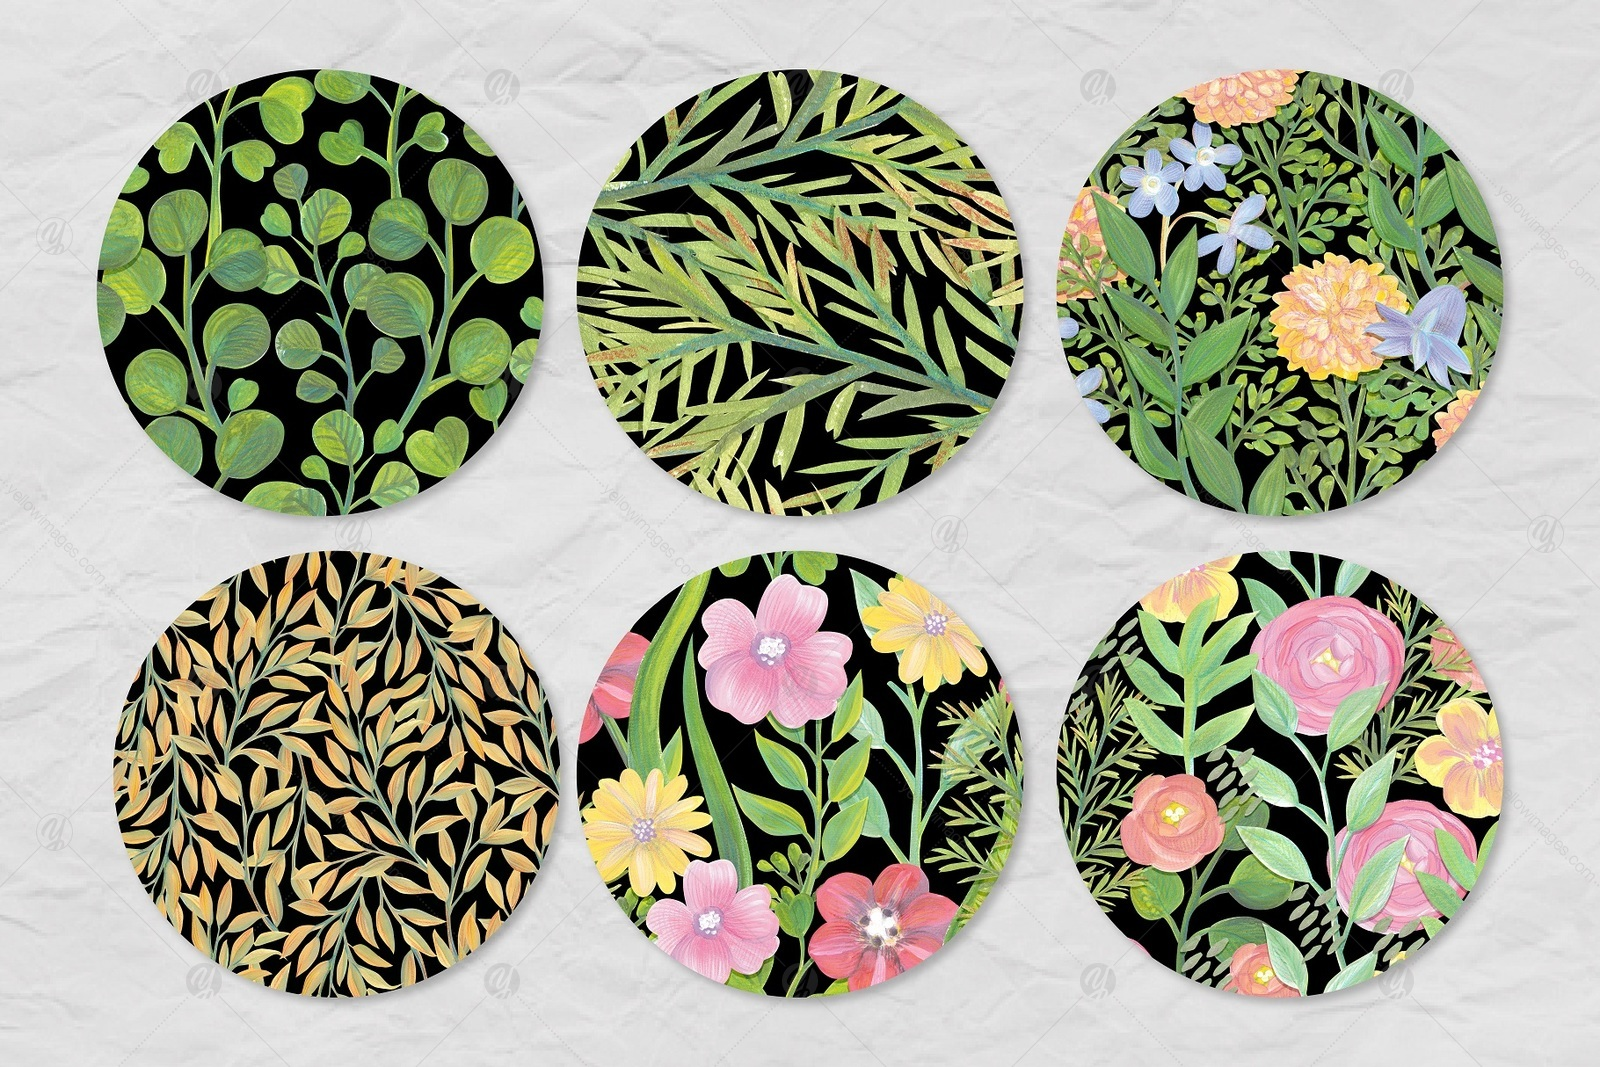 Floral Collage Creator